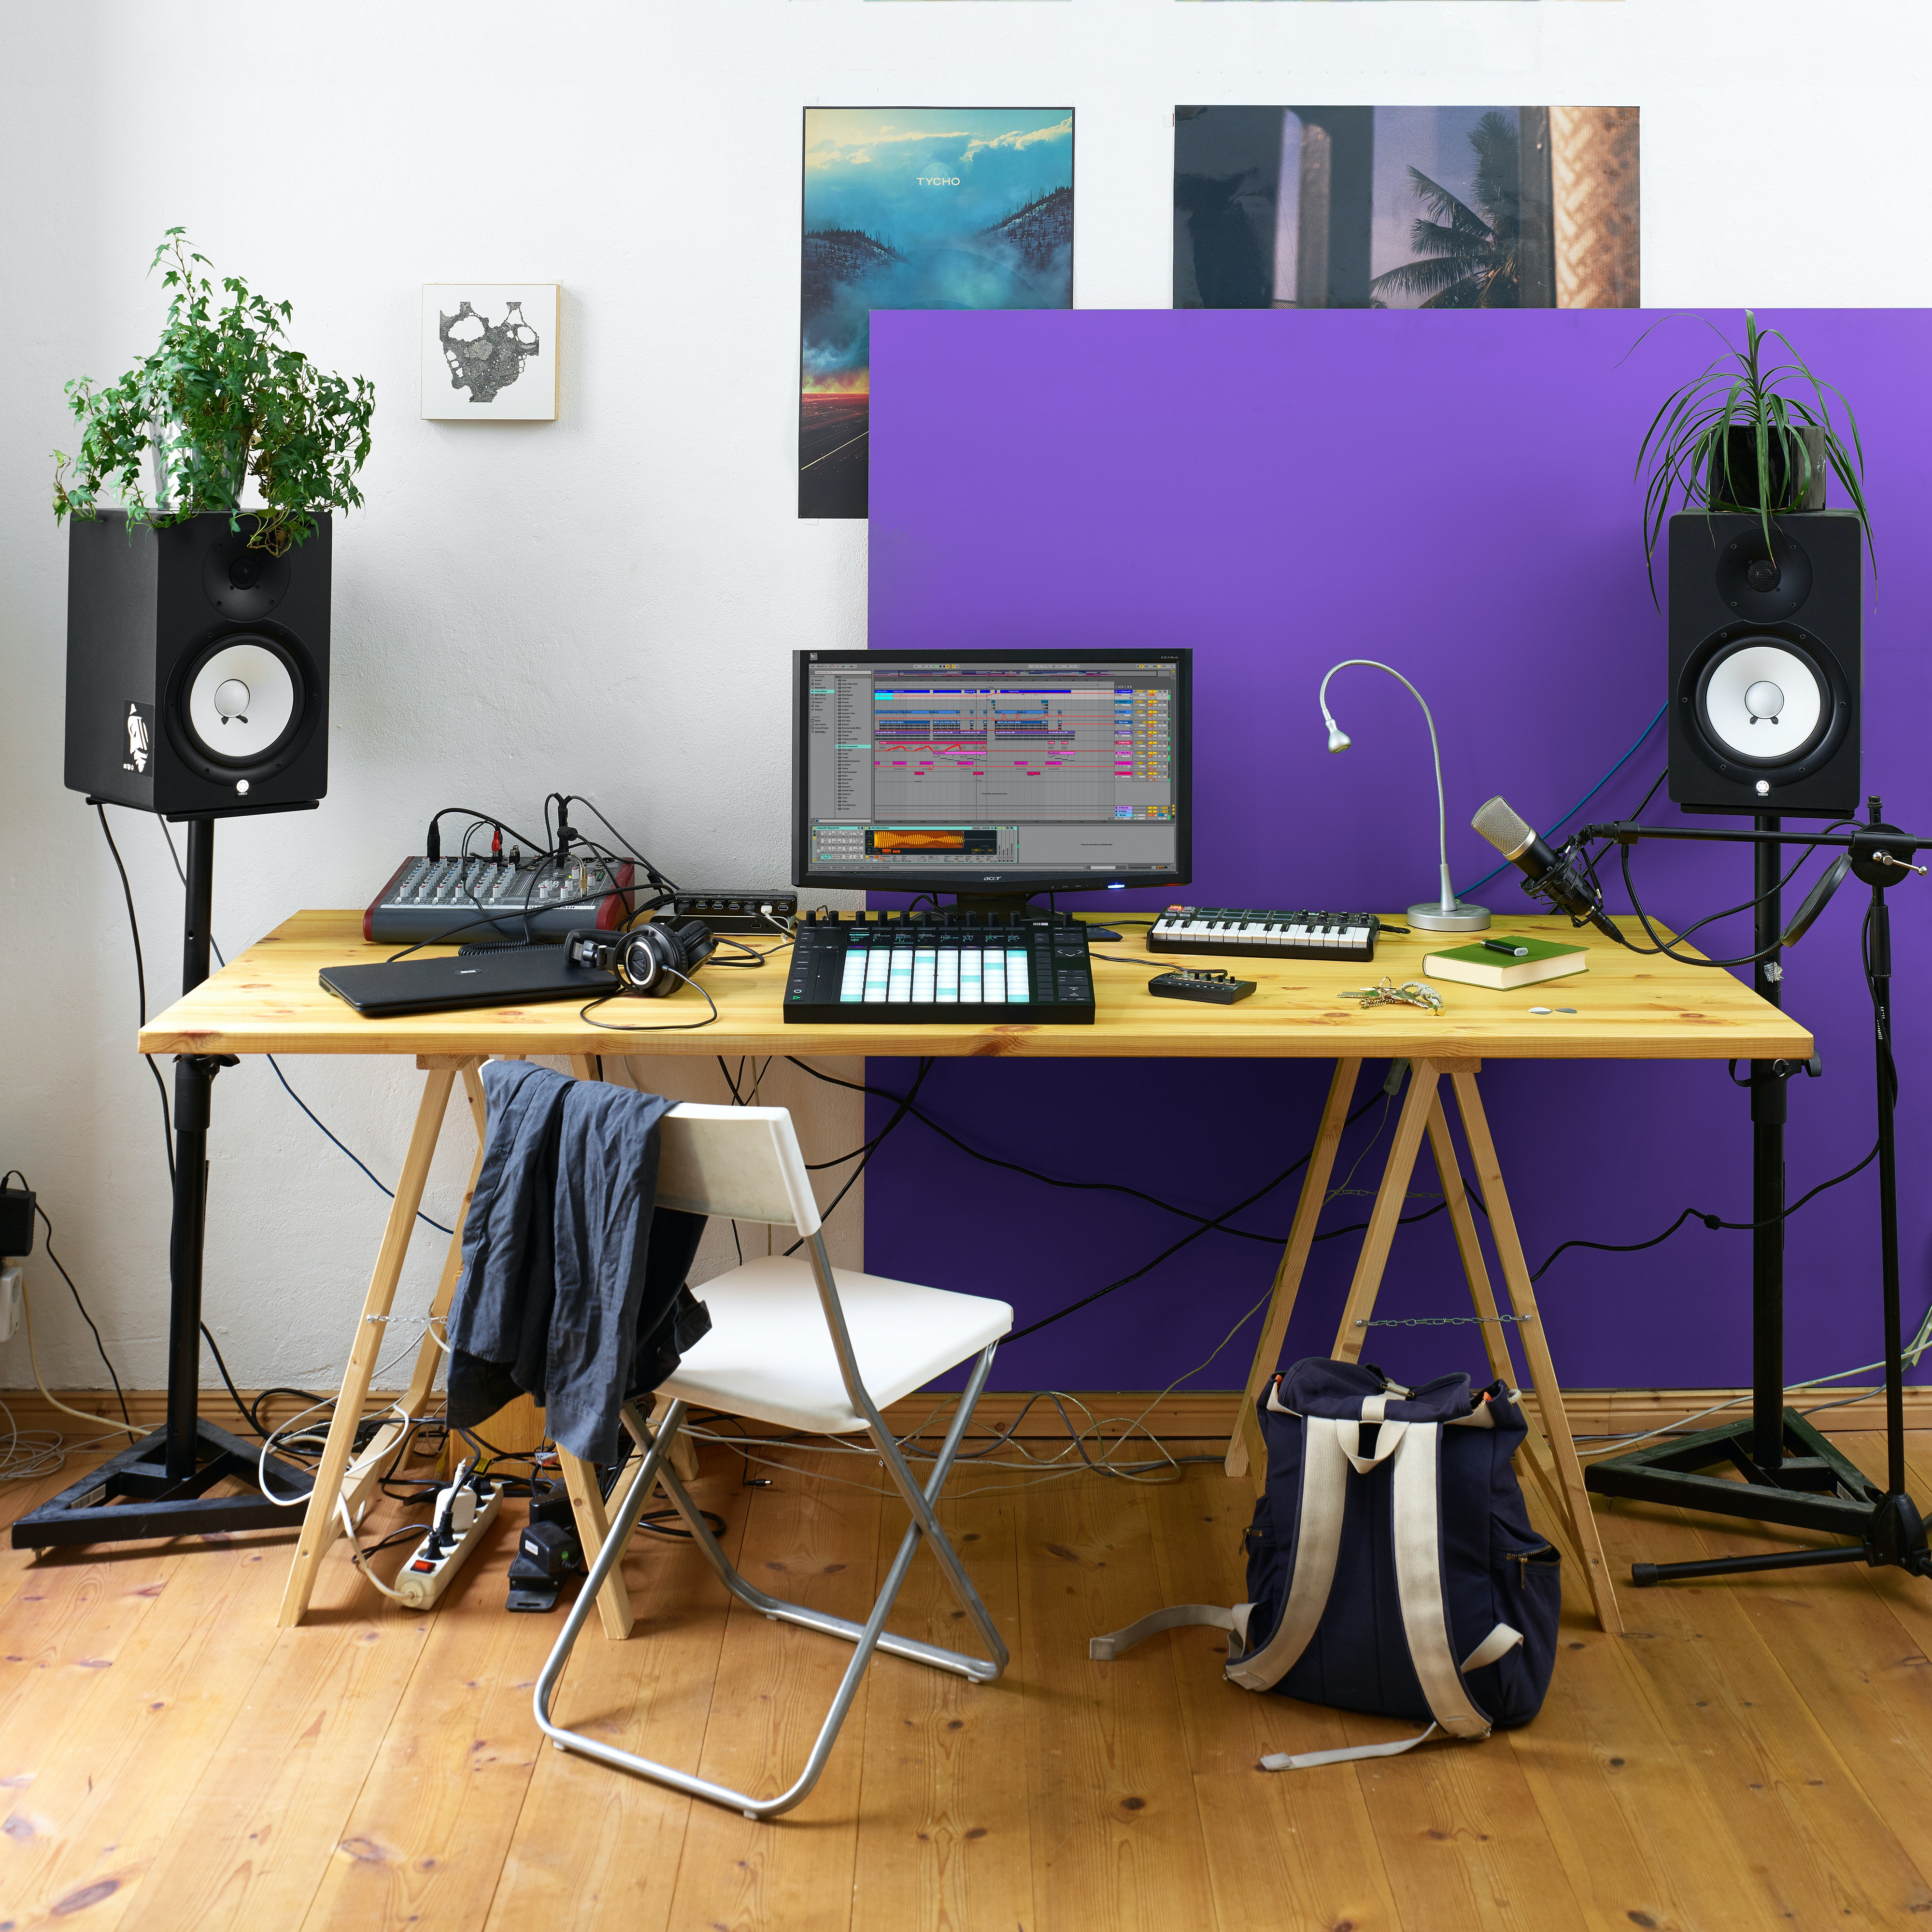 Fine Learn More About Our Music Making Software Live Ableton Largest Home Design Picture Inspirations Pitcheantrous